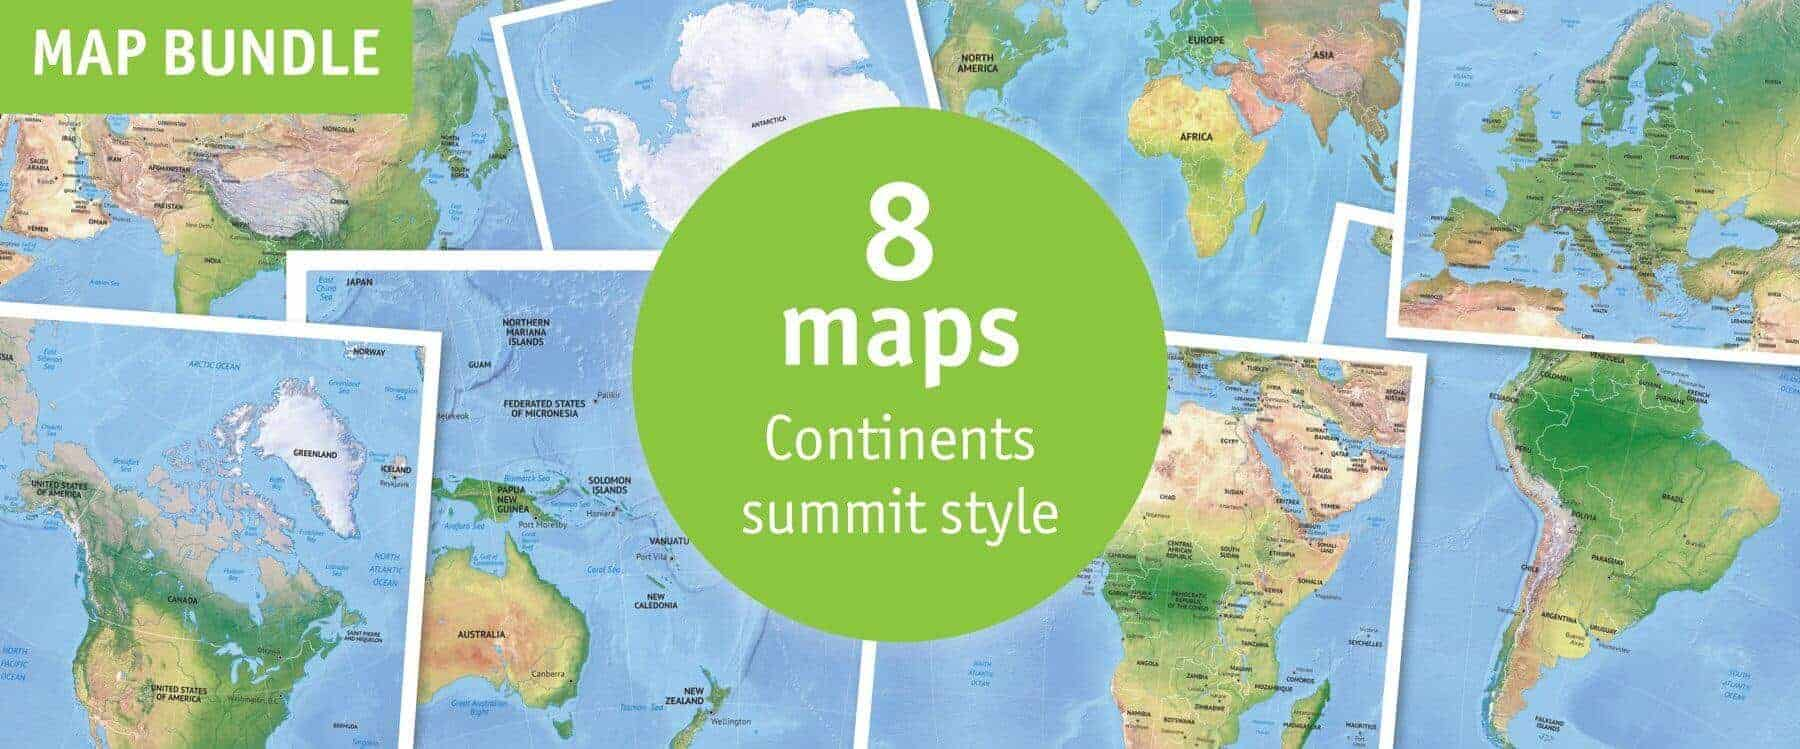 Map bundle continents political summit style